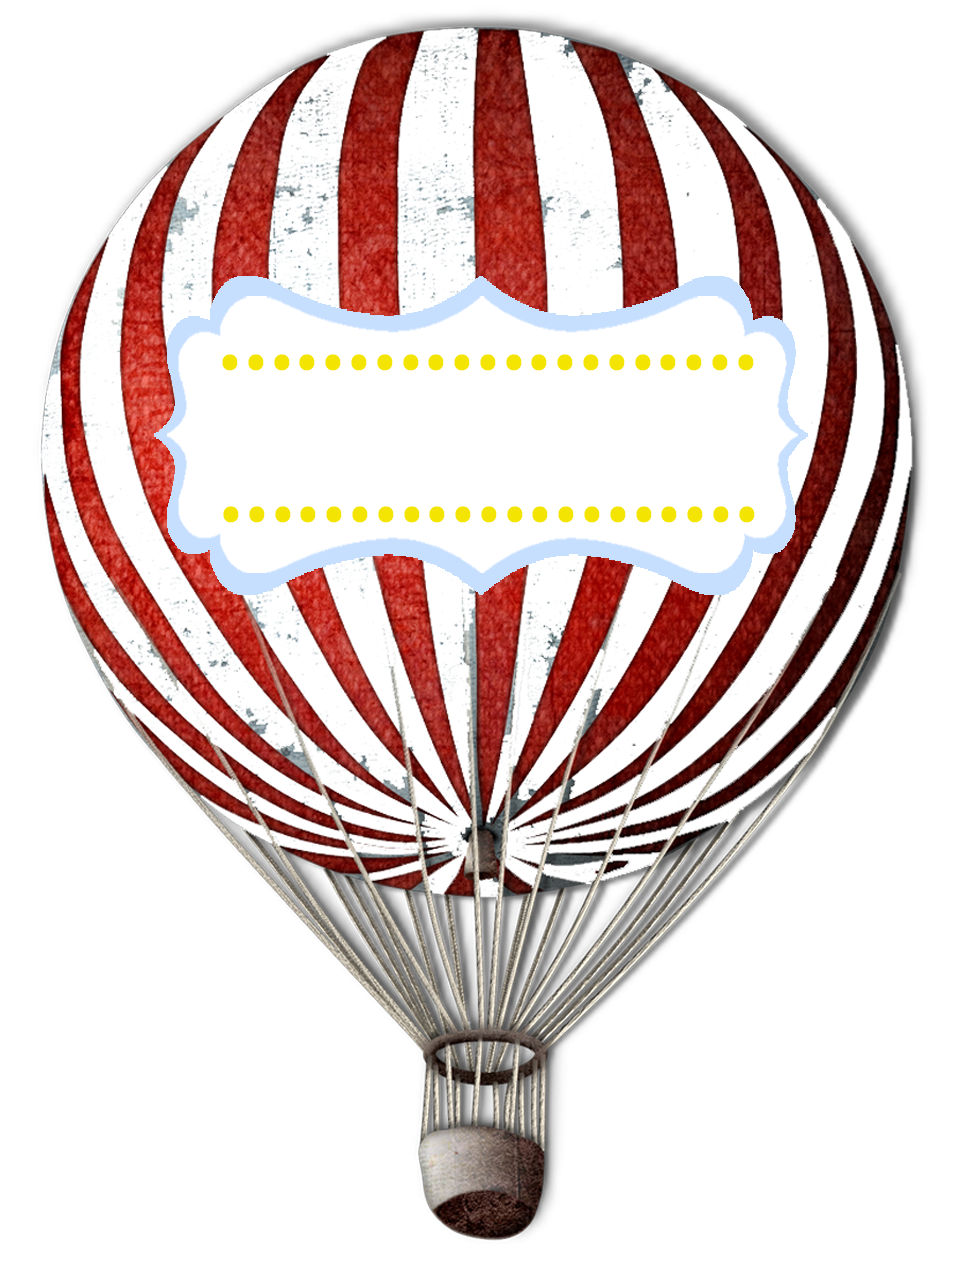 Vintage Hot Air Balloon Vector | Clipart Panda - Free ...